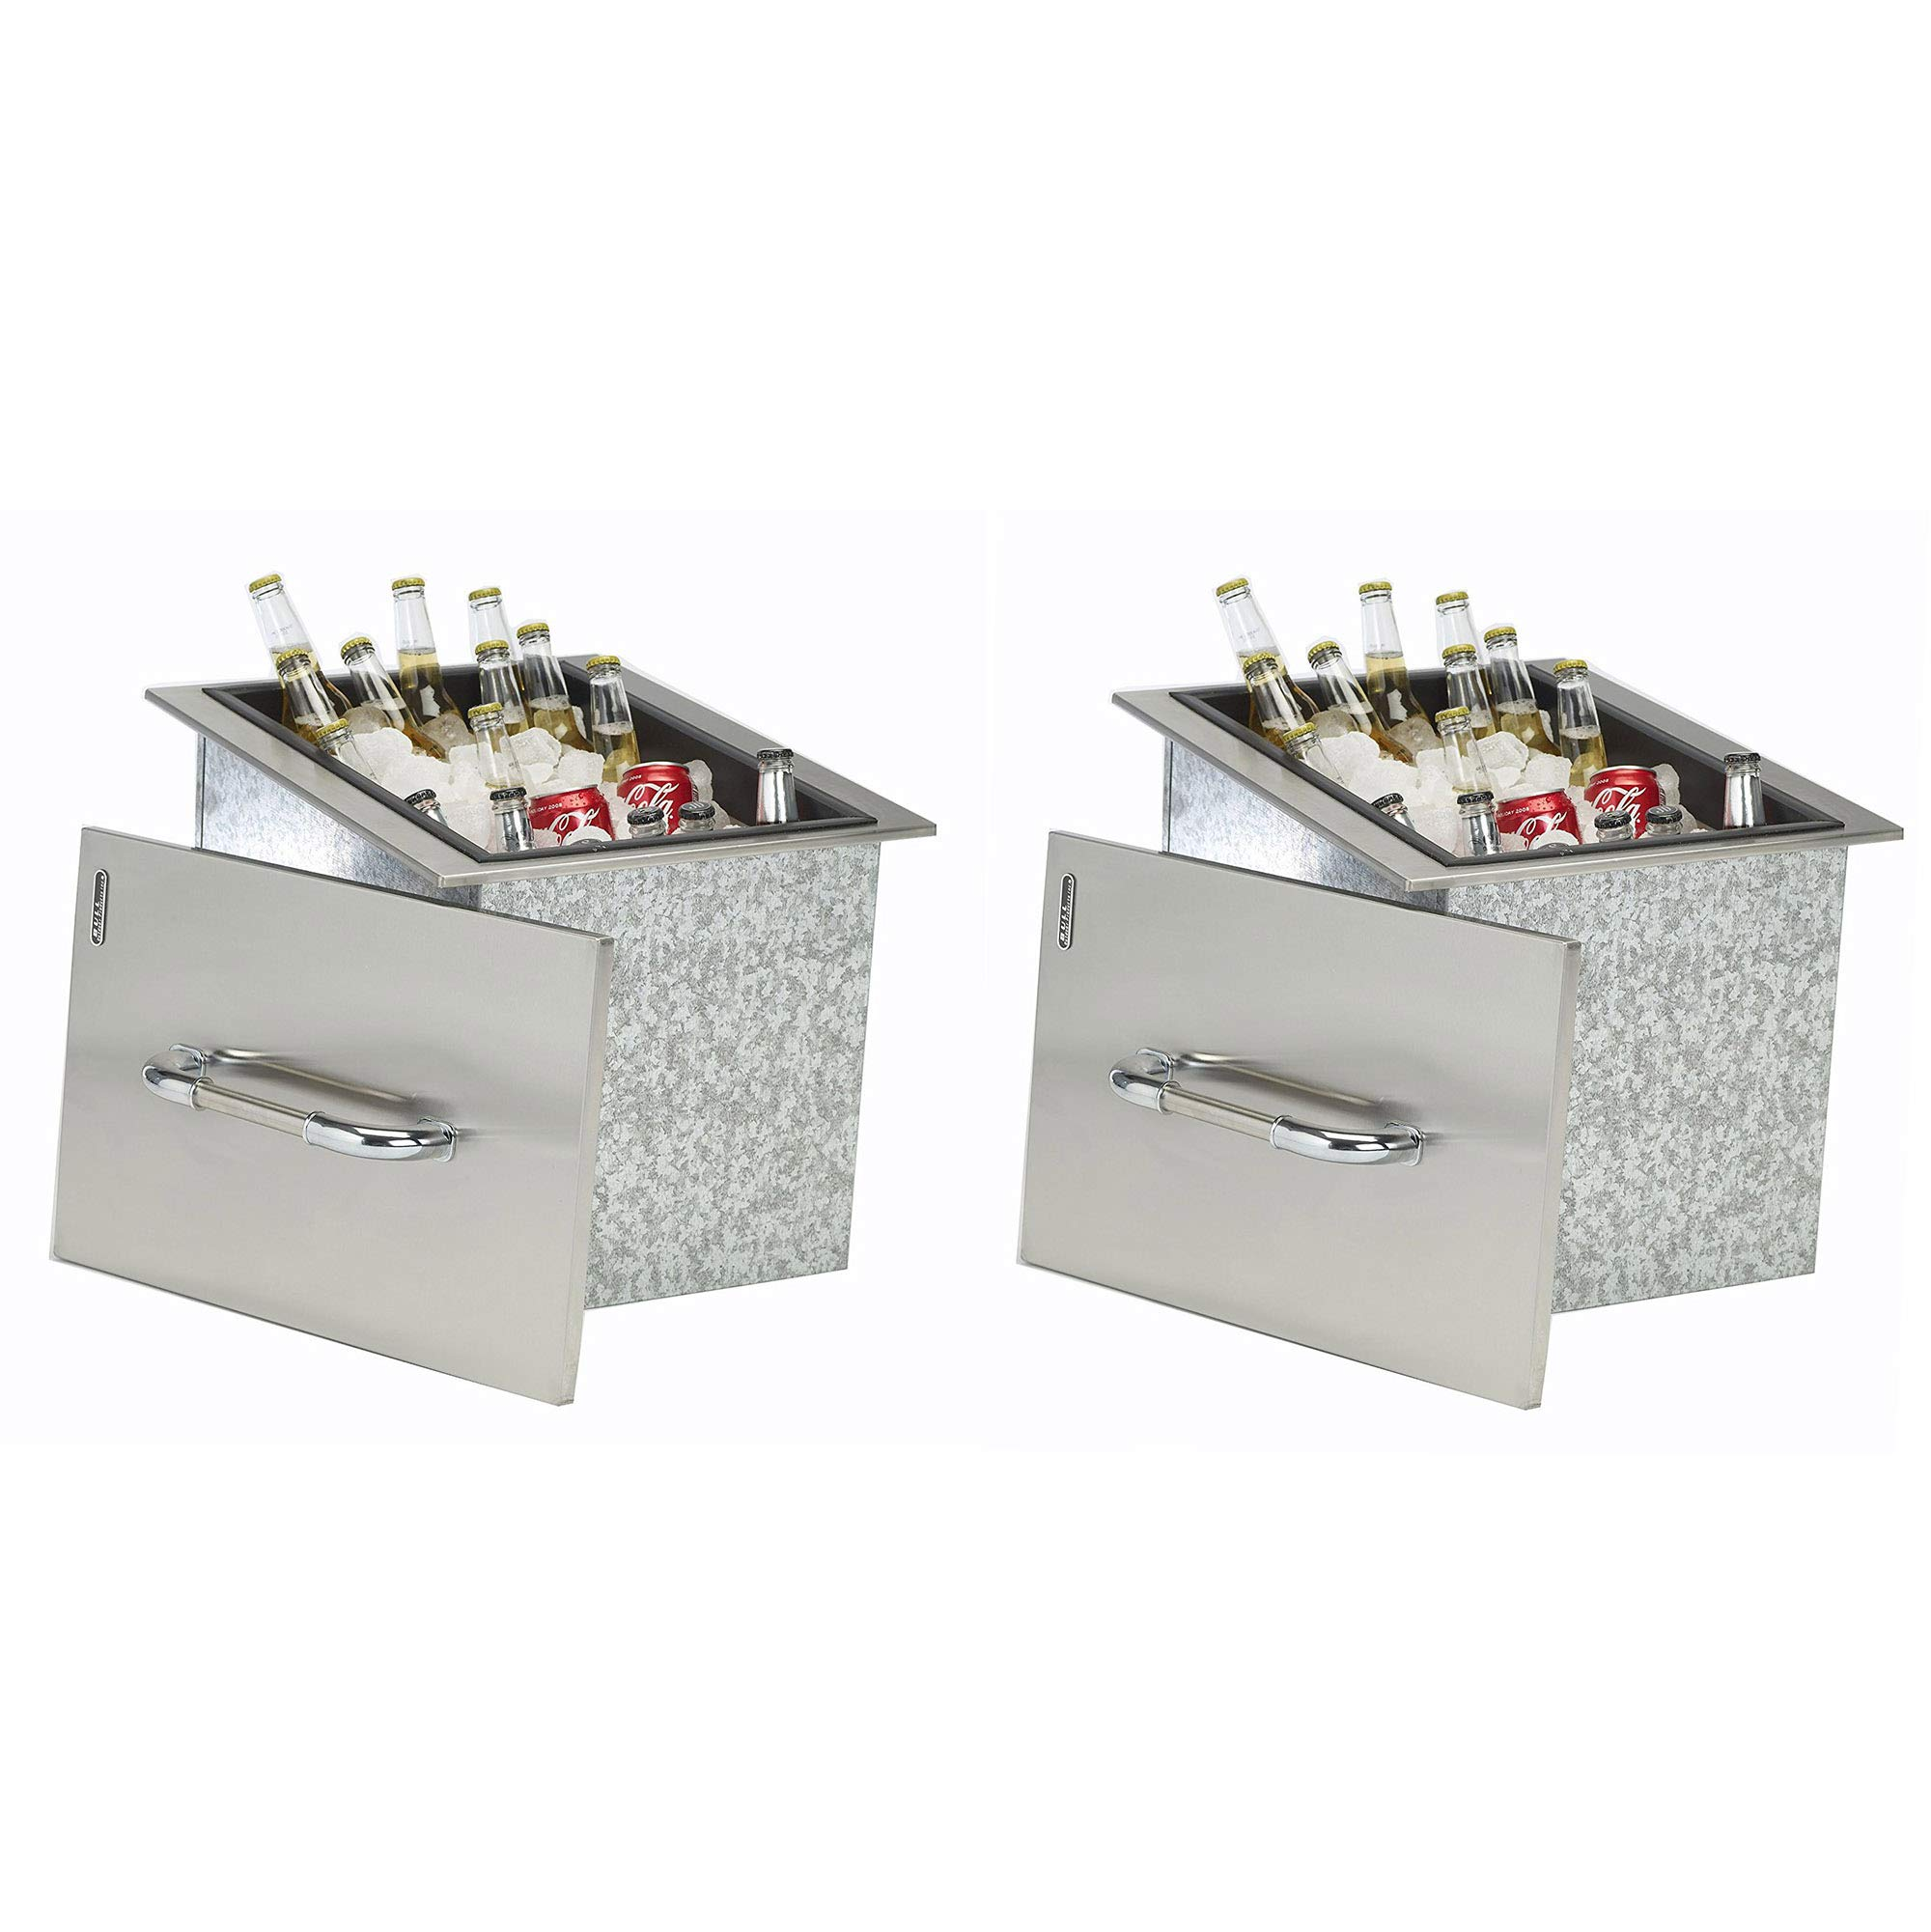 Bull Outdoor Products Stainless Steel Beverage Ice Chest Condiment Tray Cooler (2 Pack)